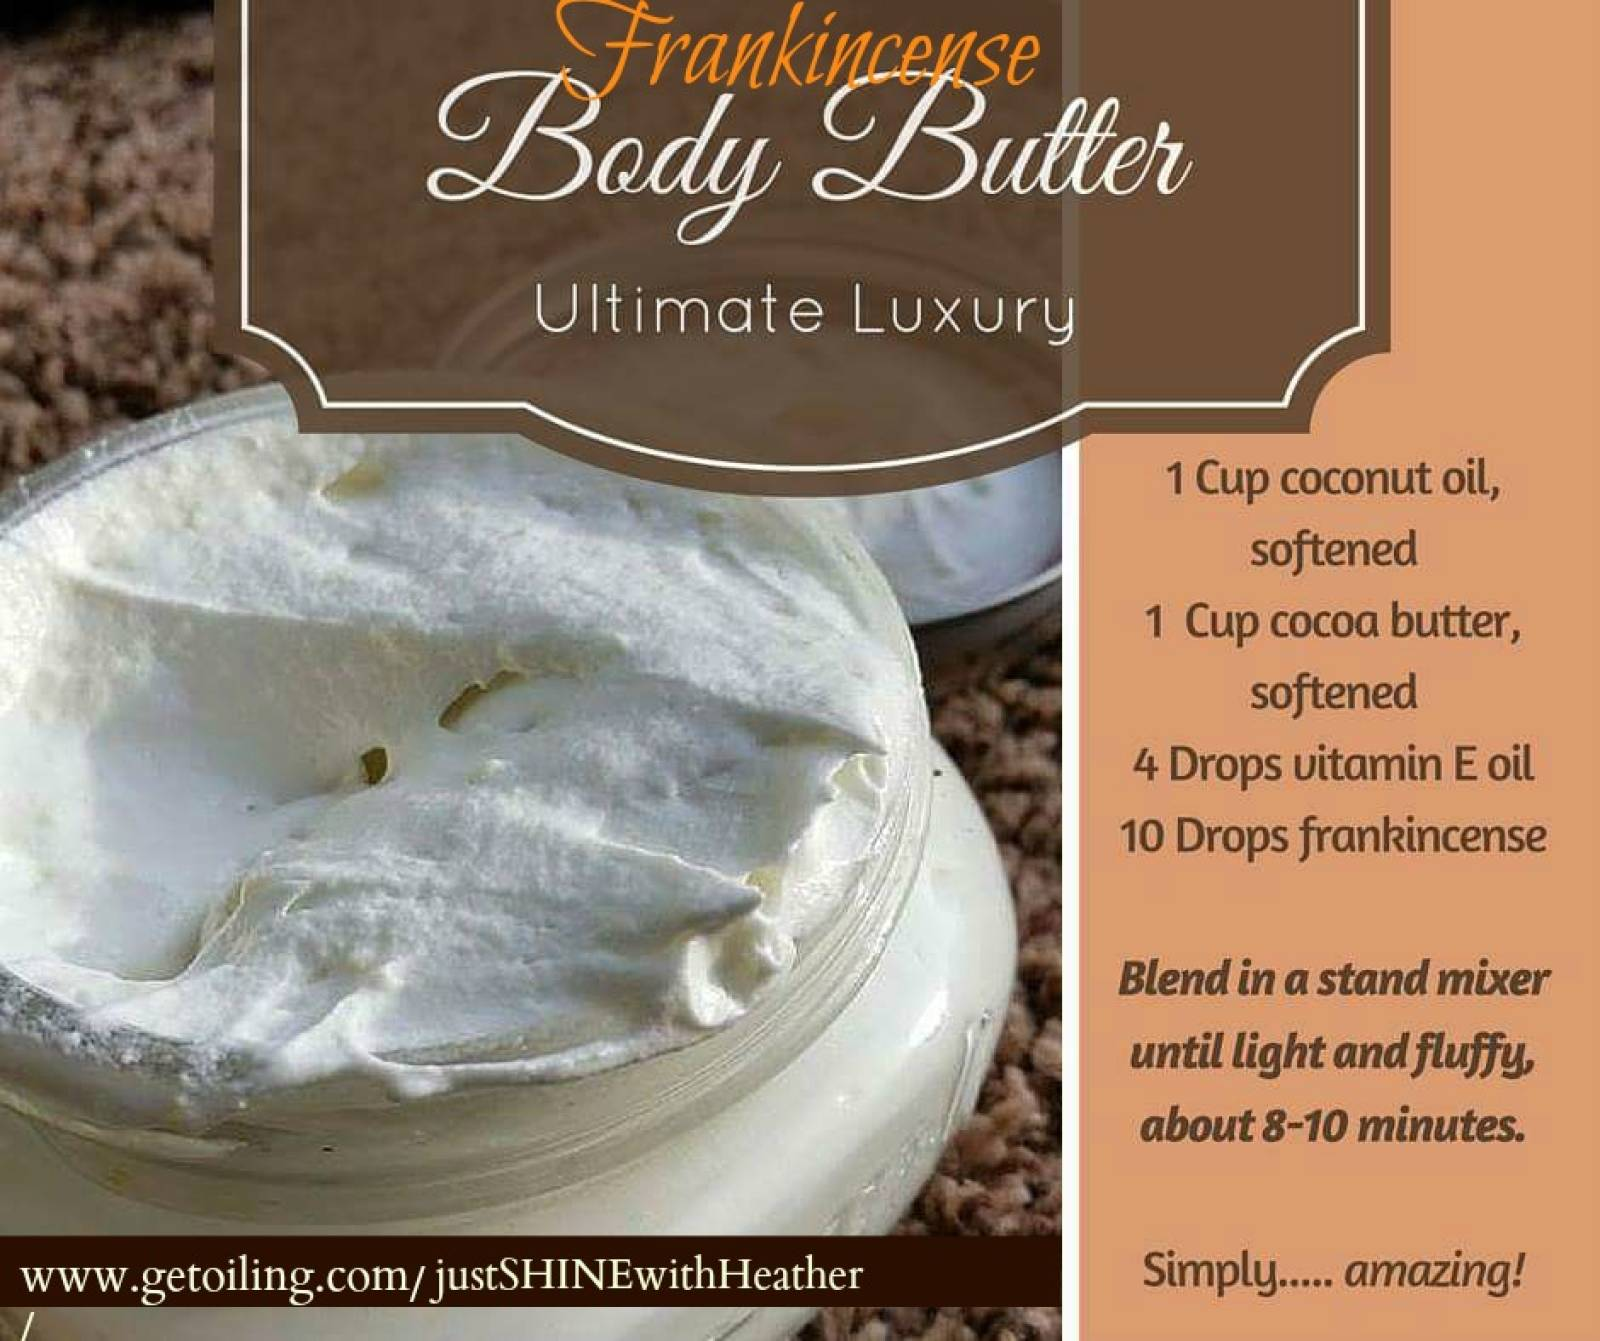 Frankincense Body Butter--The Ultimate Luxury for Winter Skin...